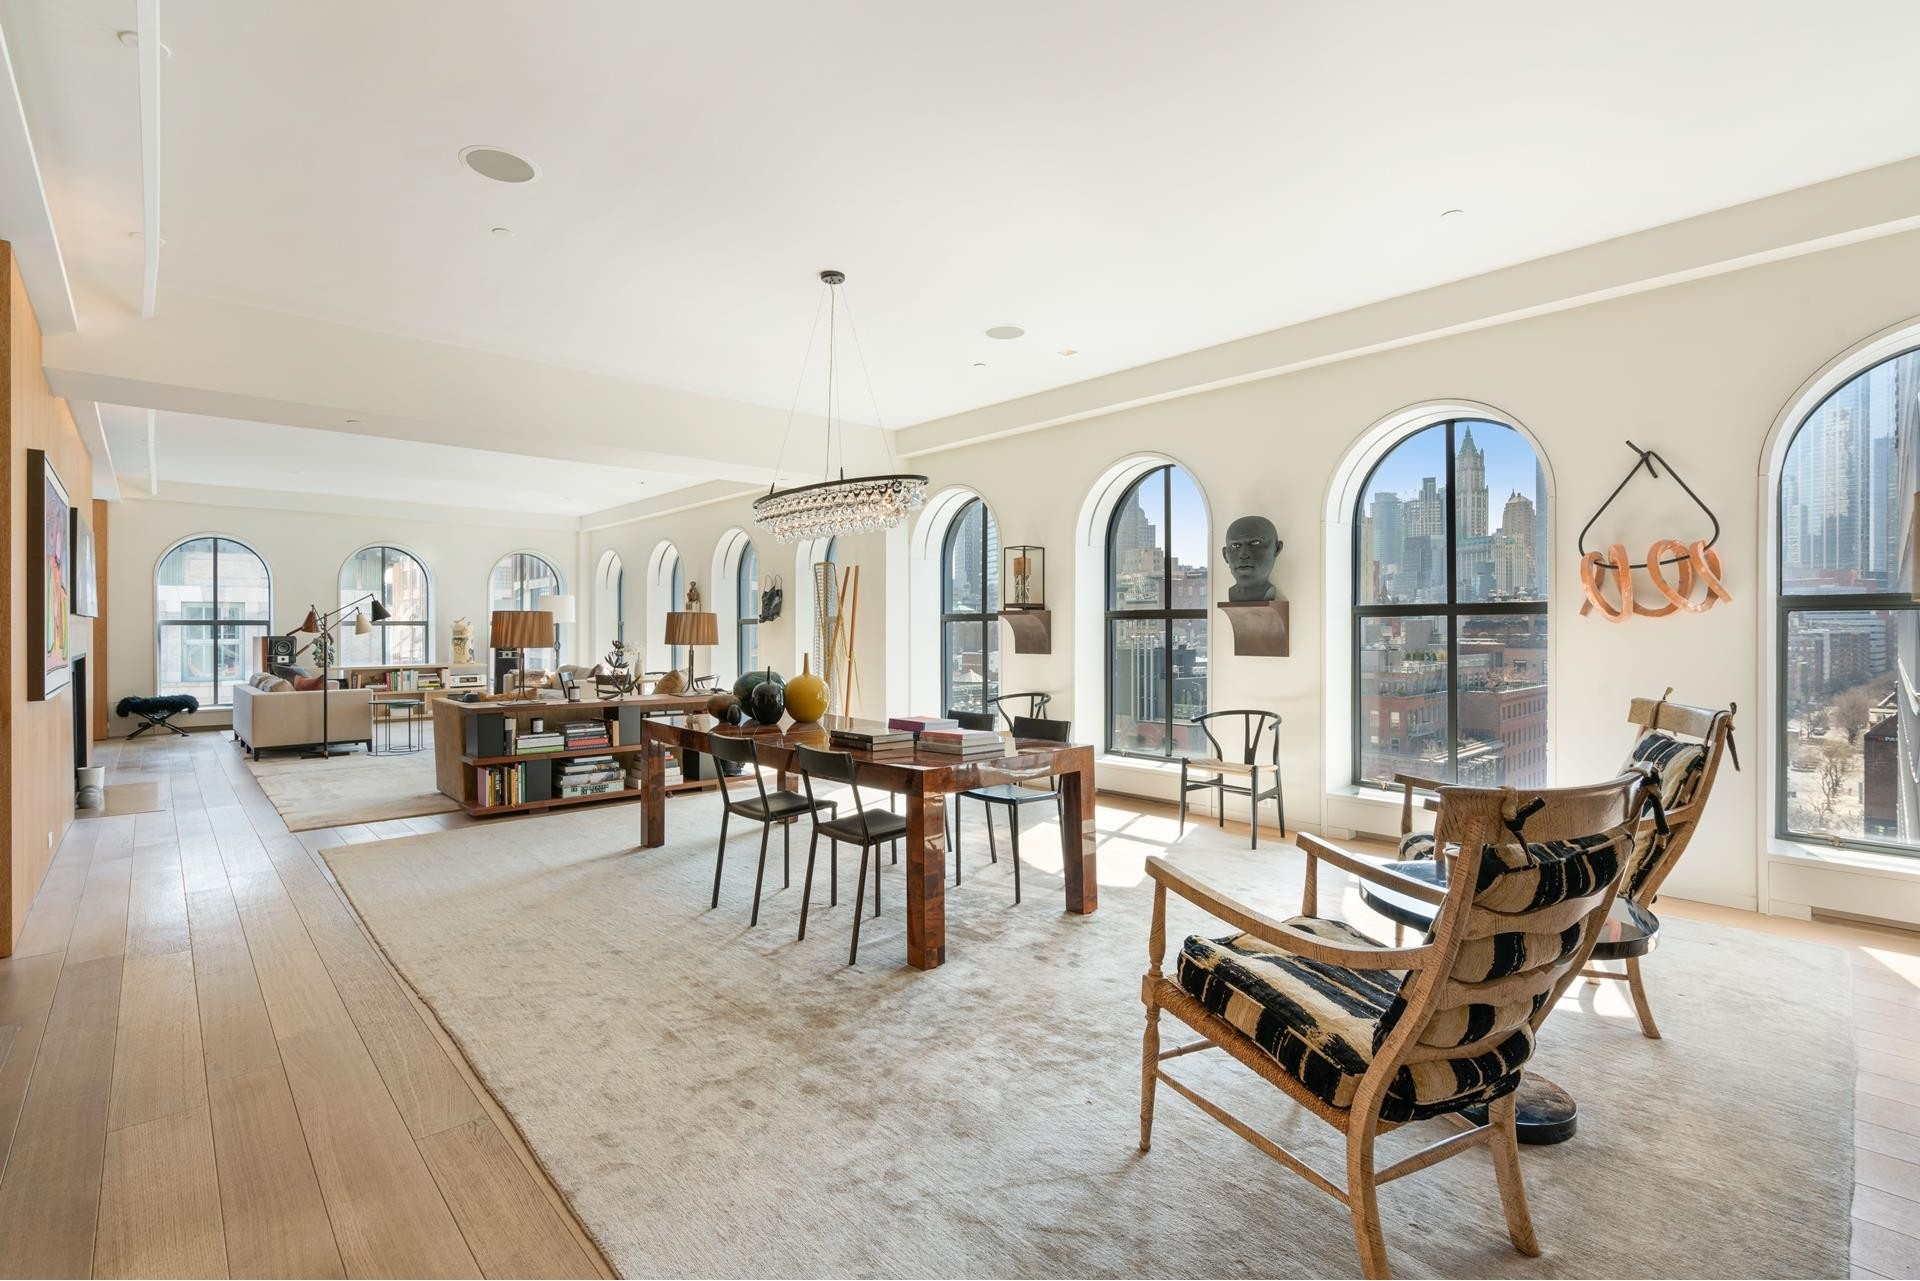 4. Condominiums for Sale at 408 GREENWICH ST , PH TriBeCa, New York, NY 10013